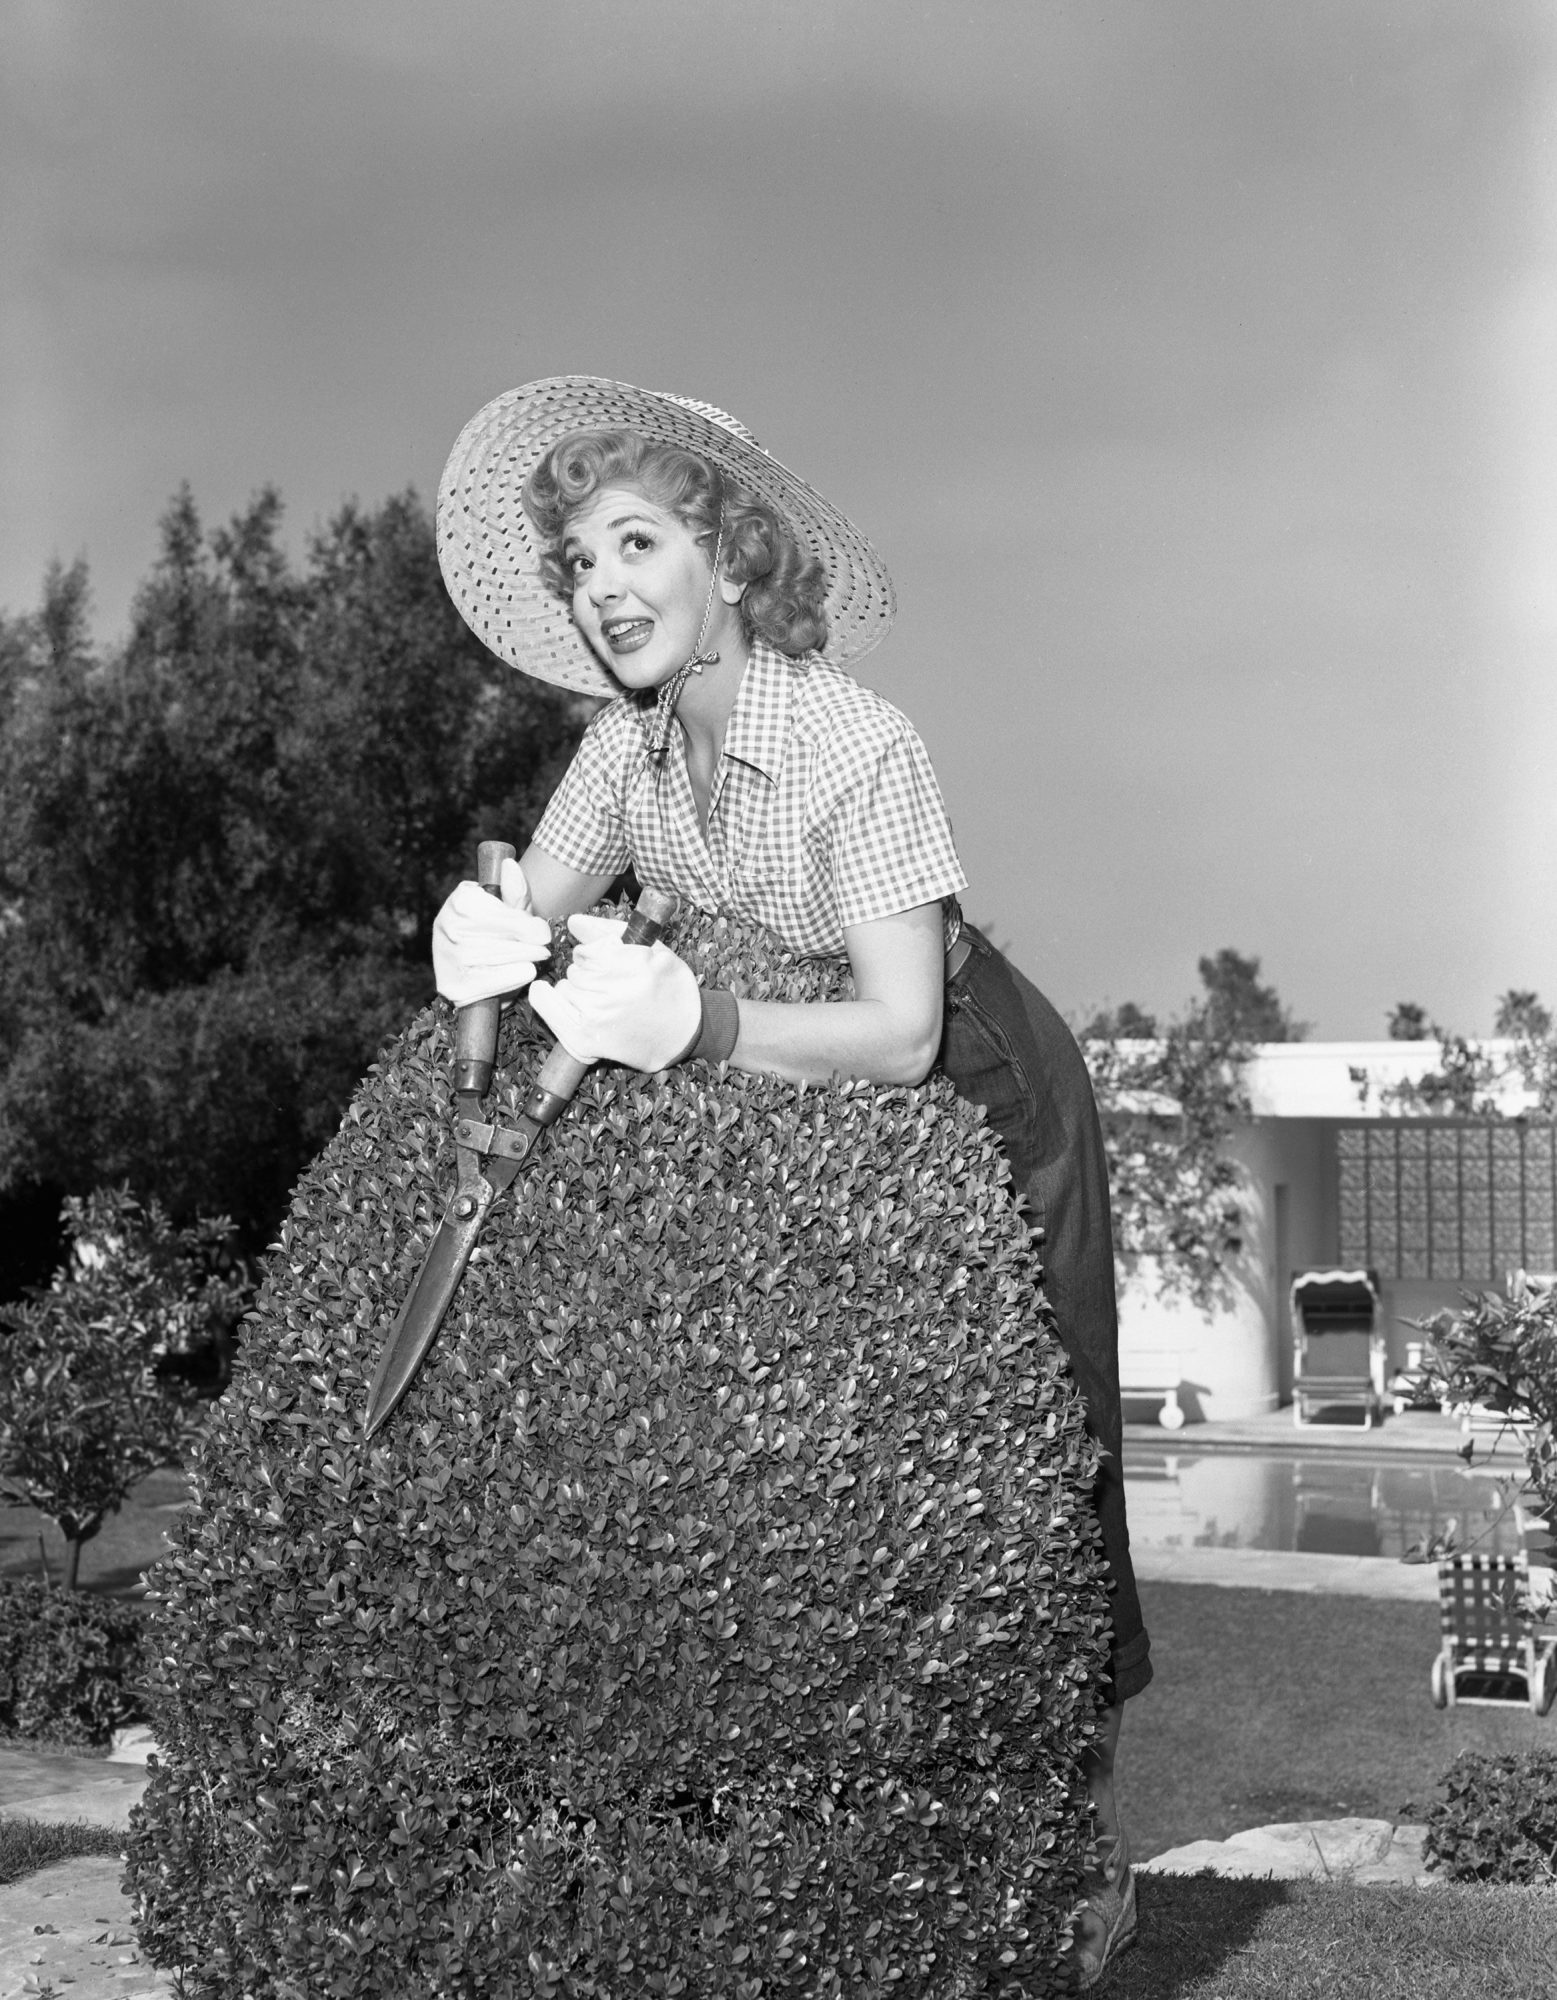 woman trimming boxwoods